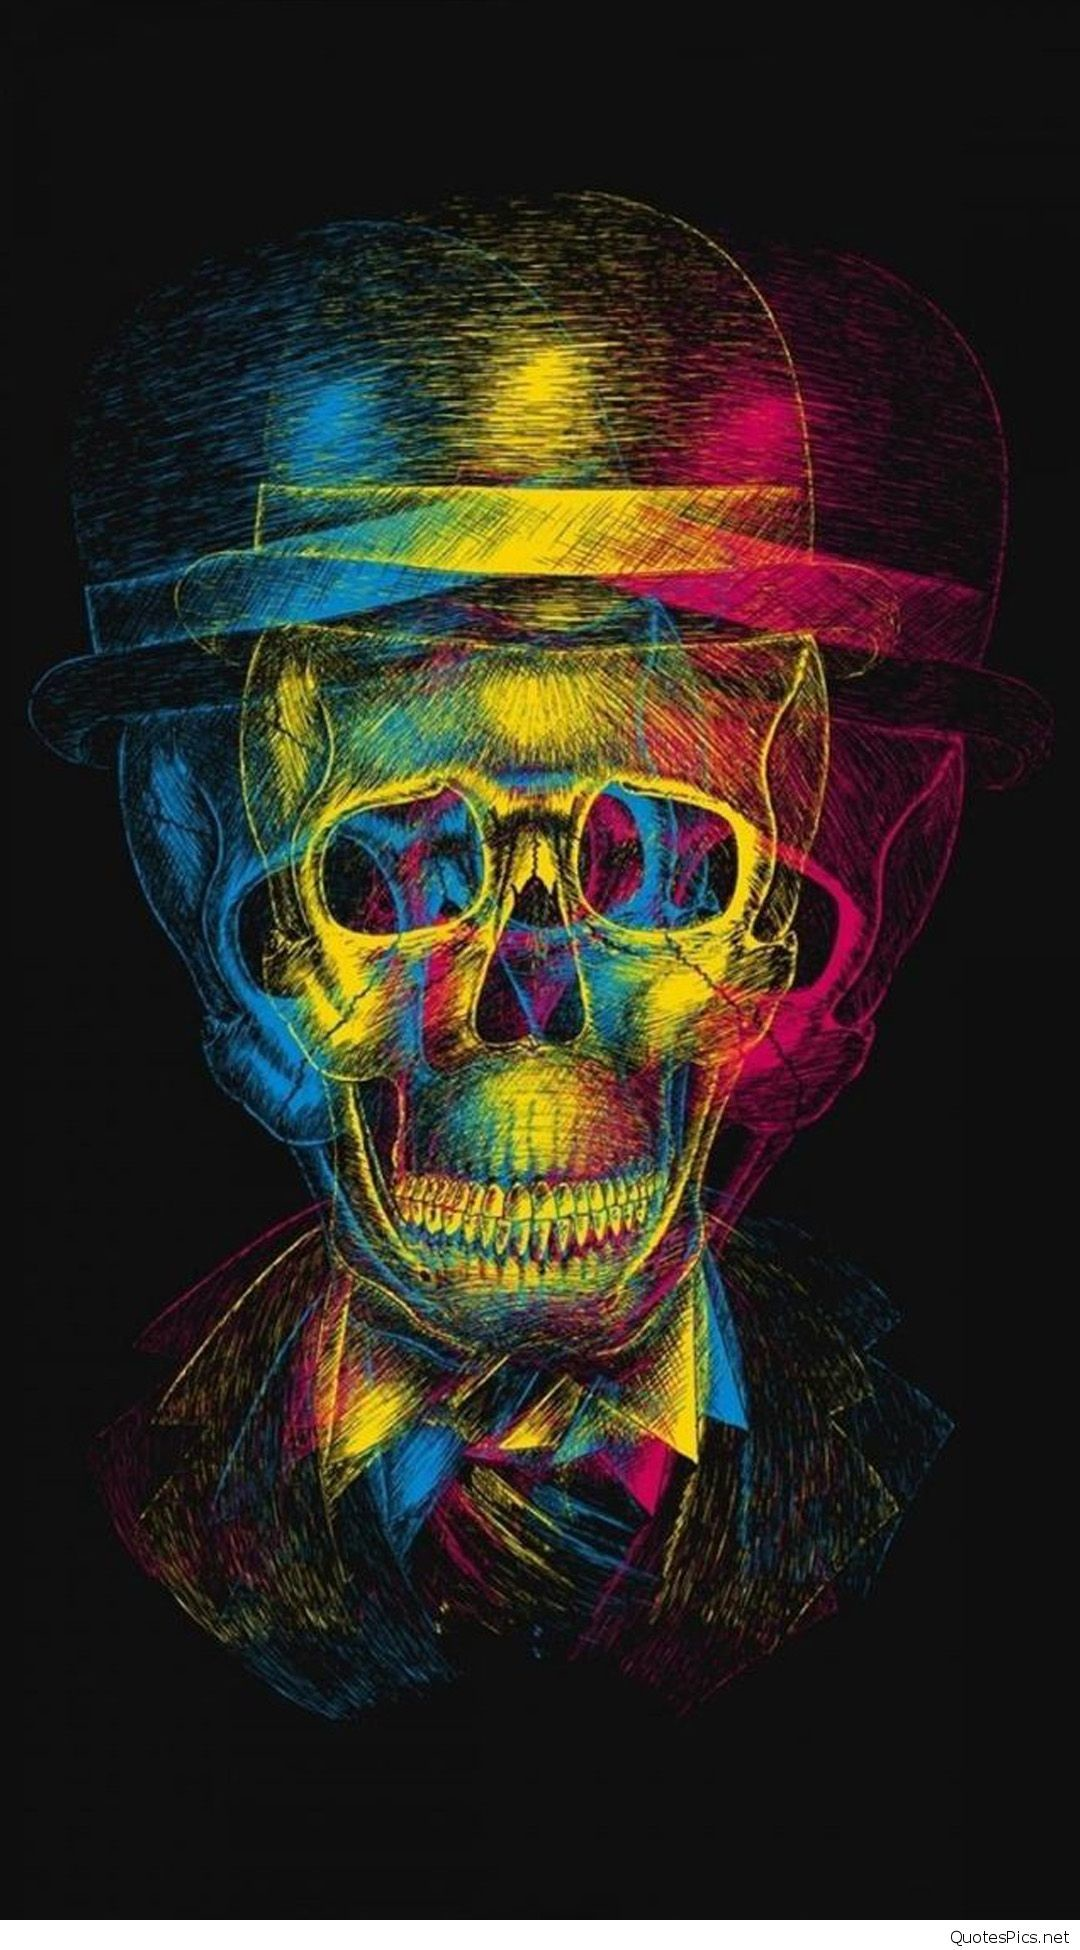 1080x1950 Colorful-Overlapping-Skull--Art-iPhone-6-plus-wallpaper